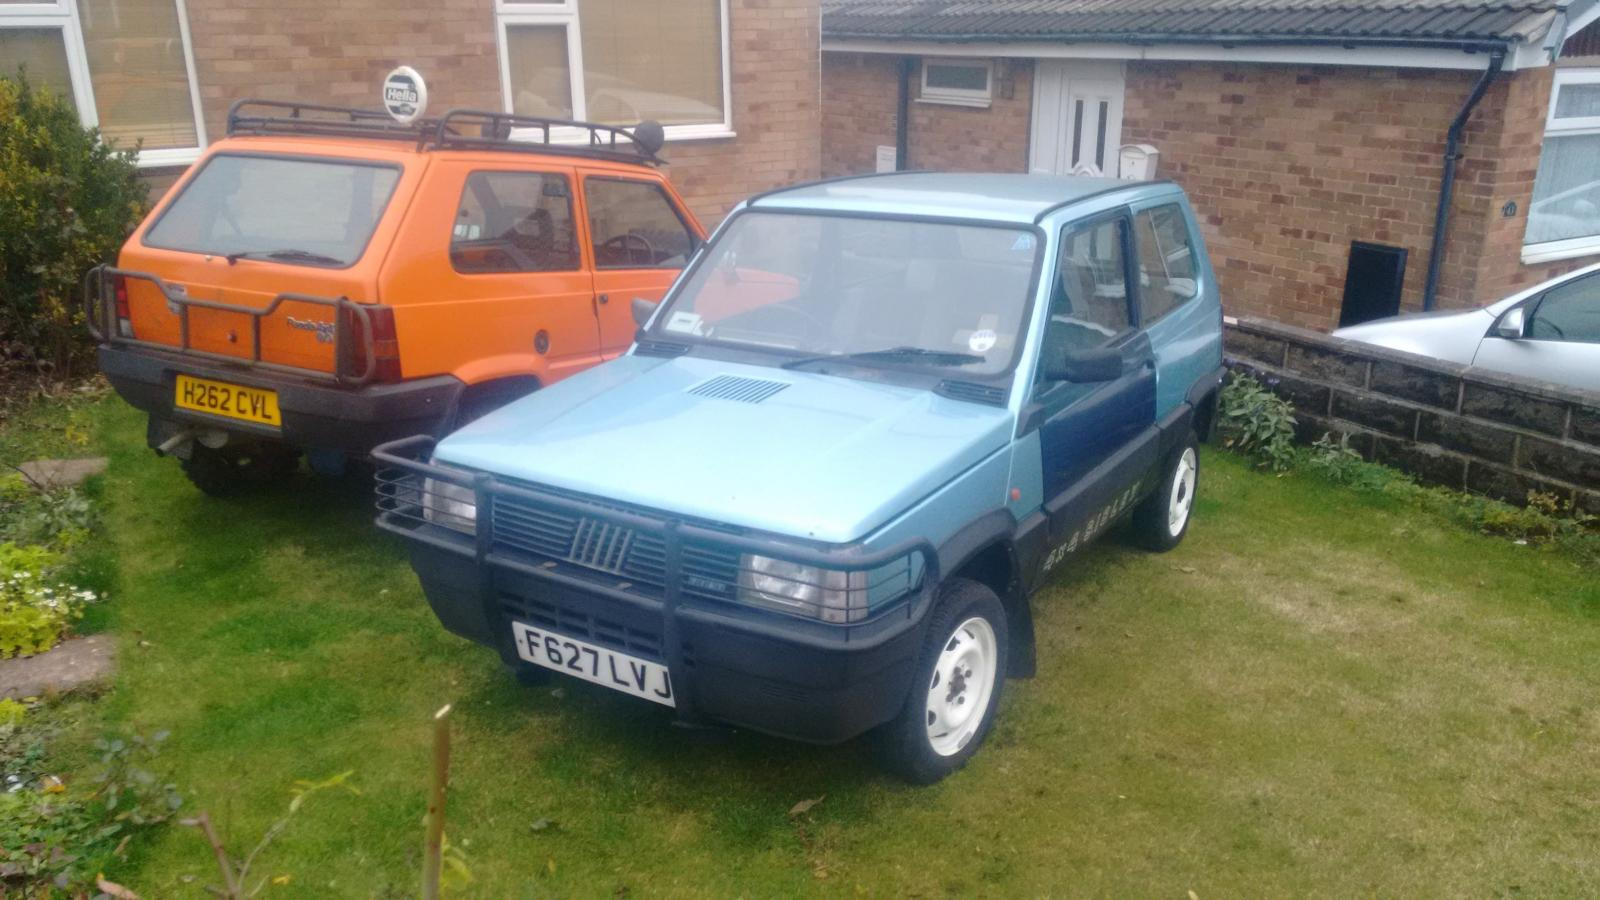 members classic improve panda easy great keeping finish pale in will colour dave forum places sale task really a green as motors like has this the but an be i fiat original done so for